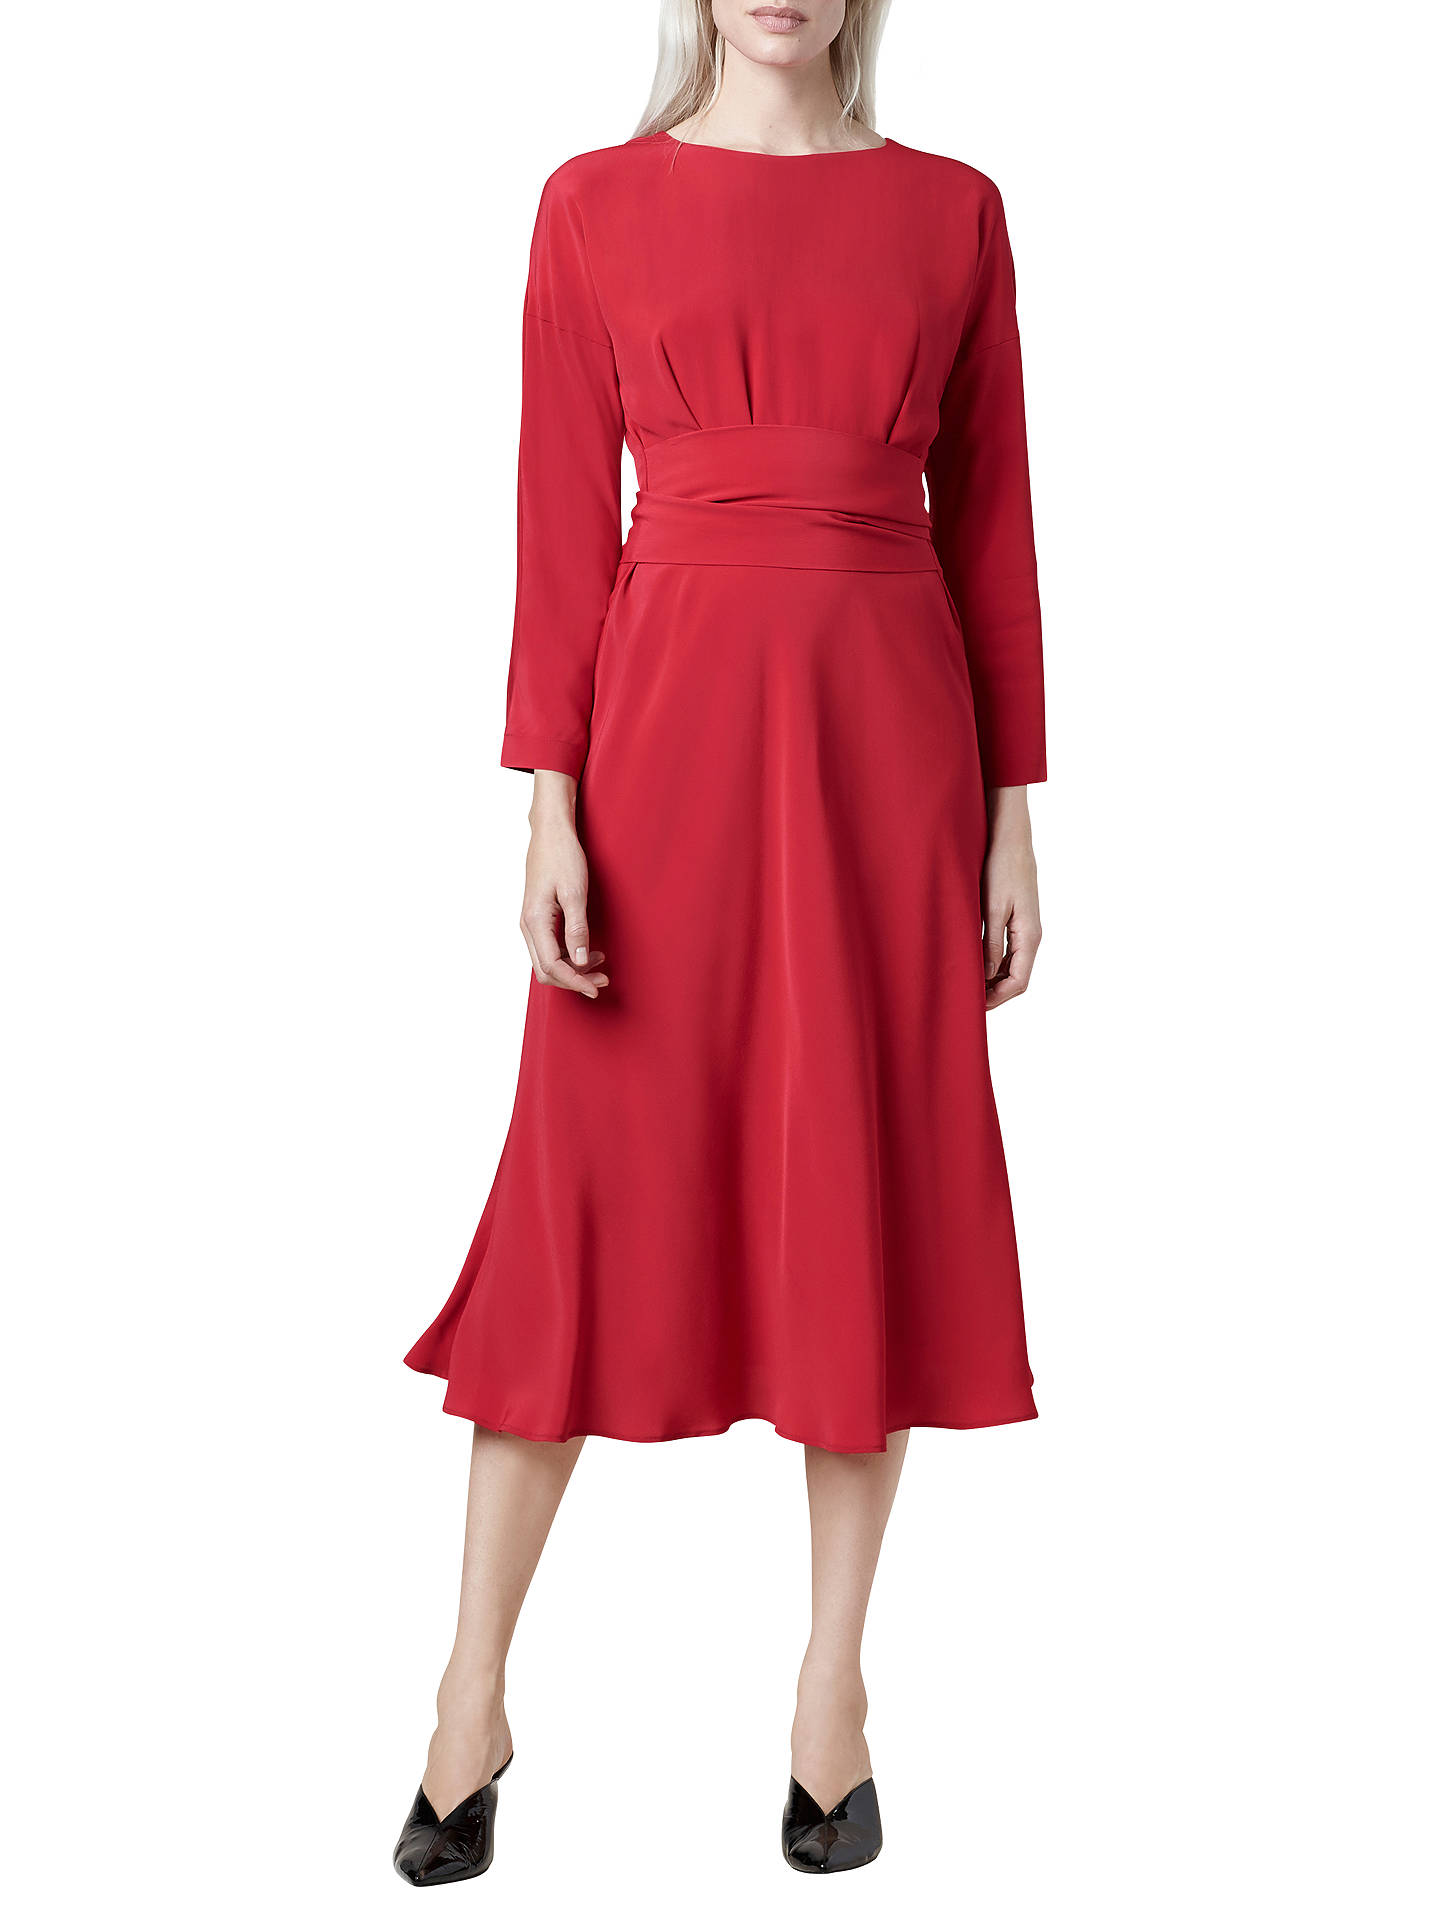 BuyFinery Freda Shift Dress, Red, 8 Online at johnlewis.com